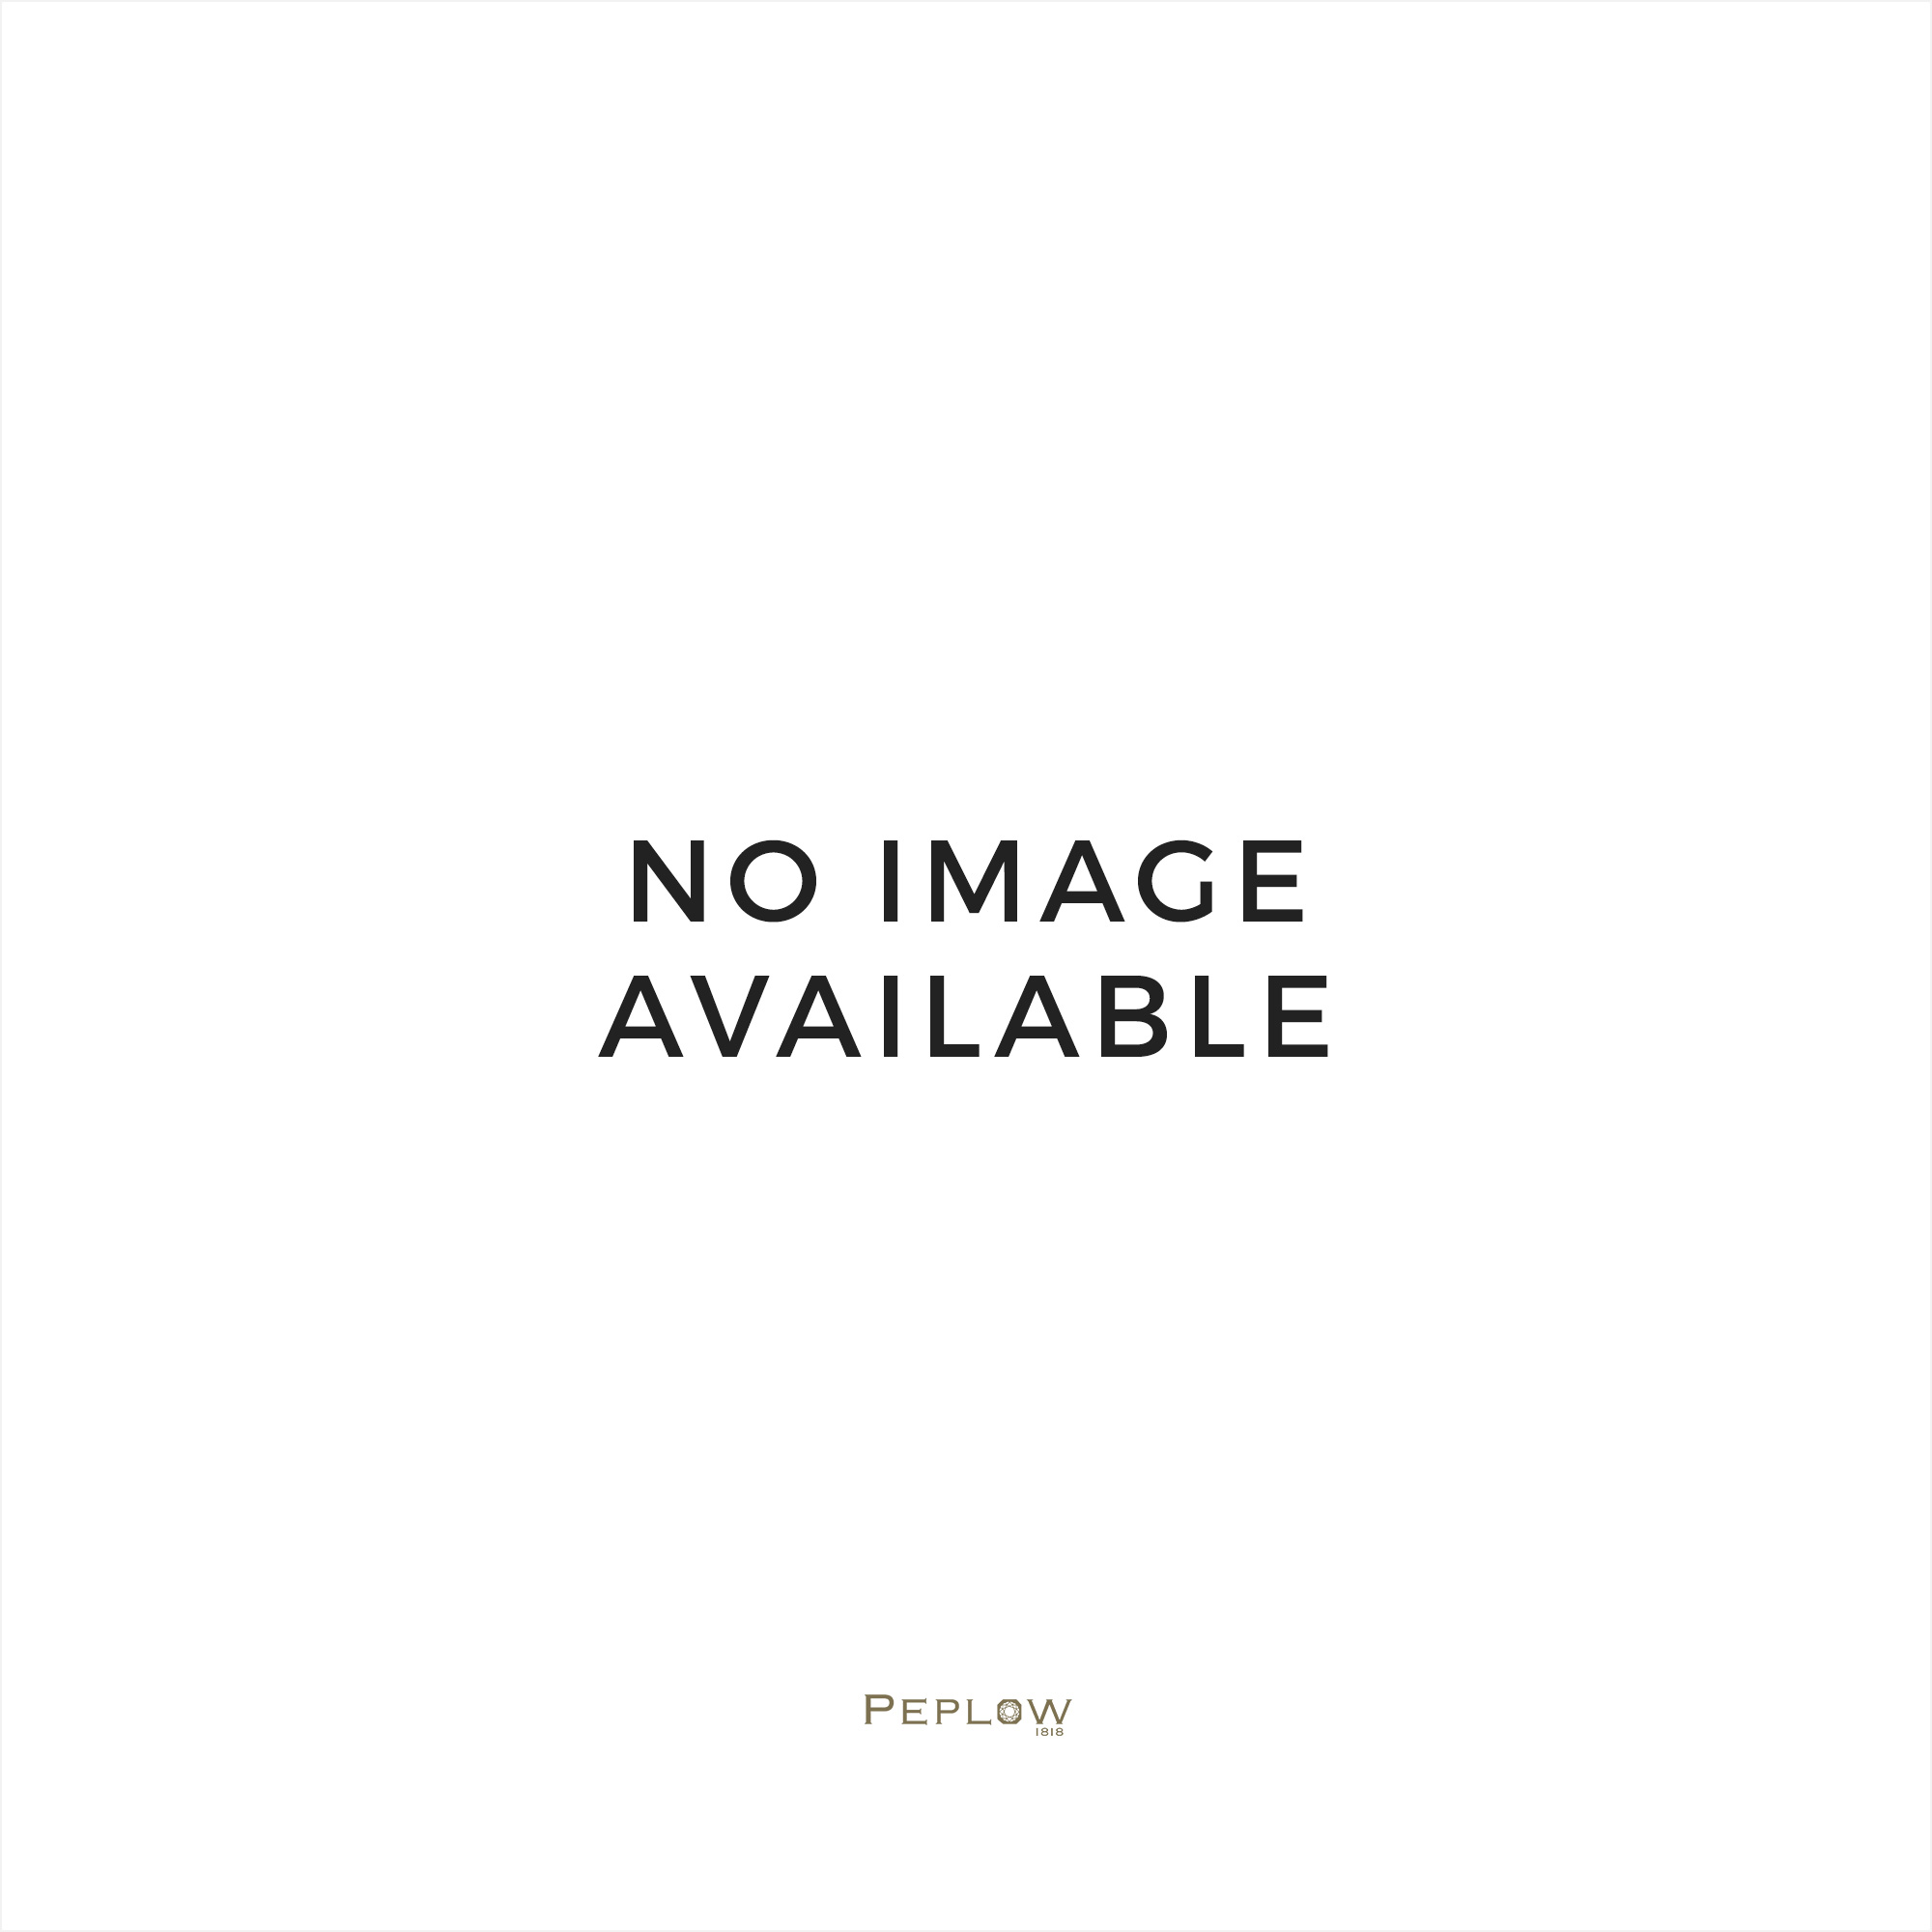 Seiko Watches Clear case Seiko mantle clock with silver dial. QXG103S